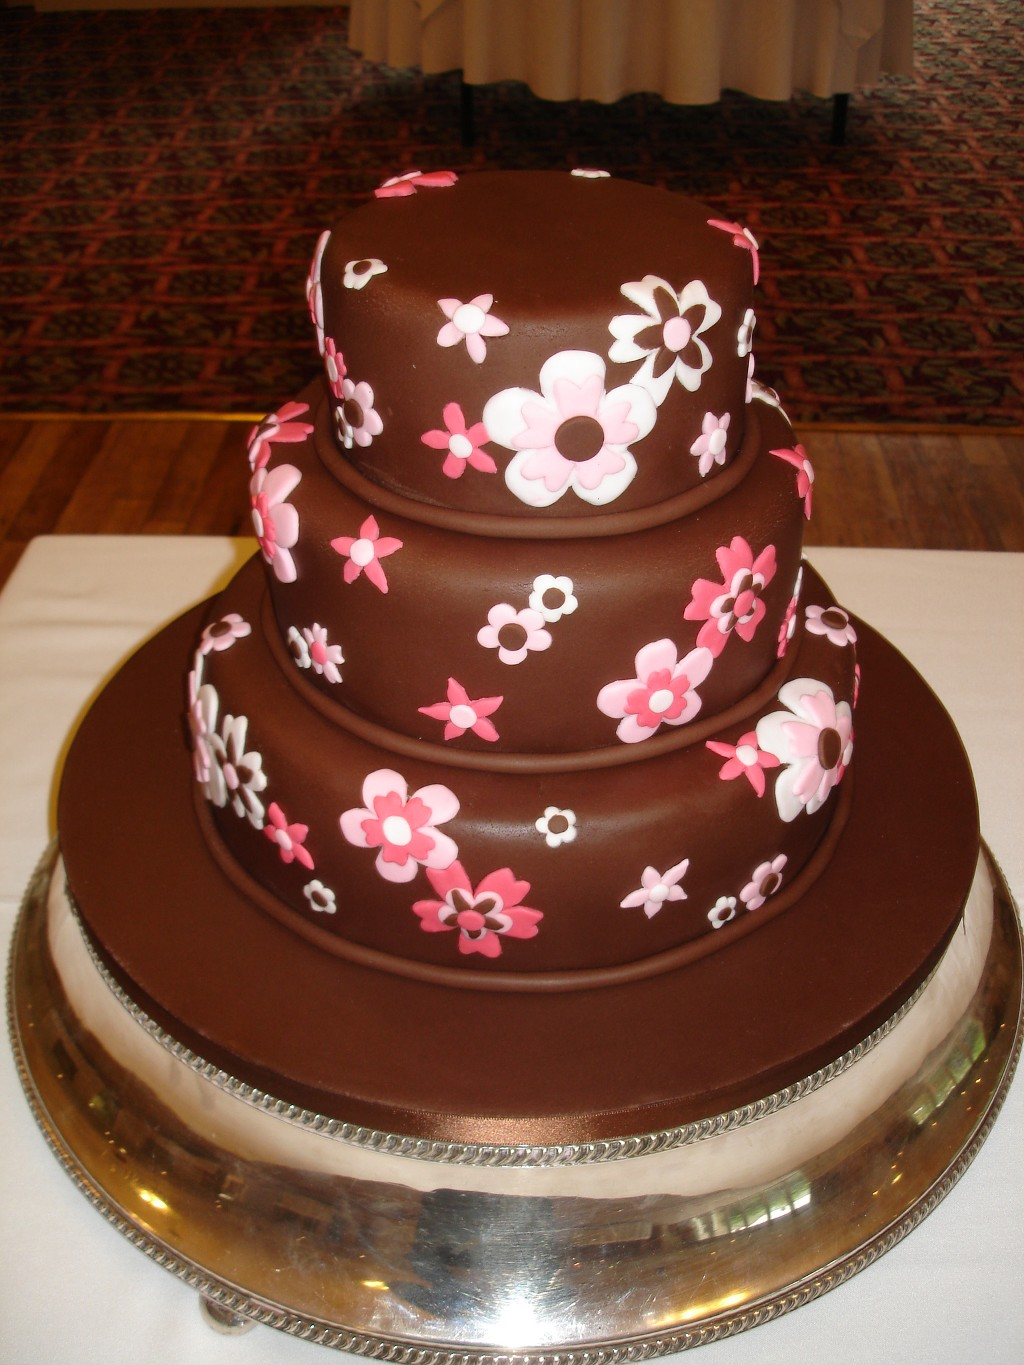 Three Tier Chocolate Iced Wedding Cake with Pink Flowers